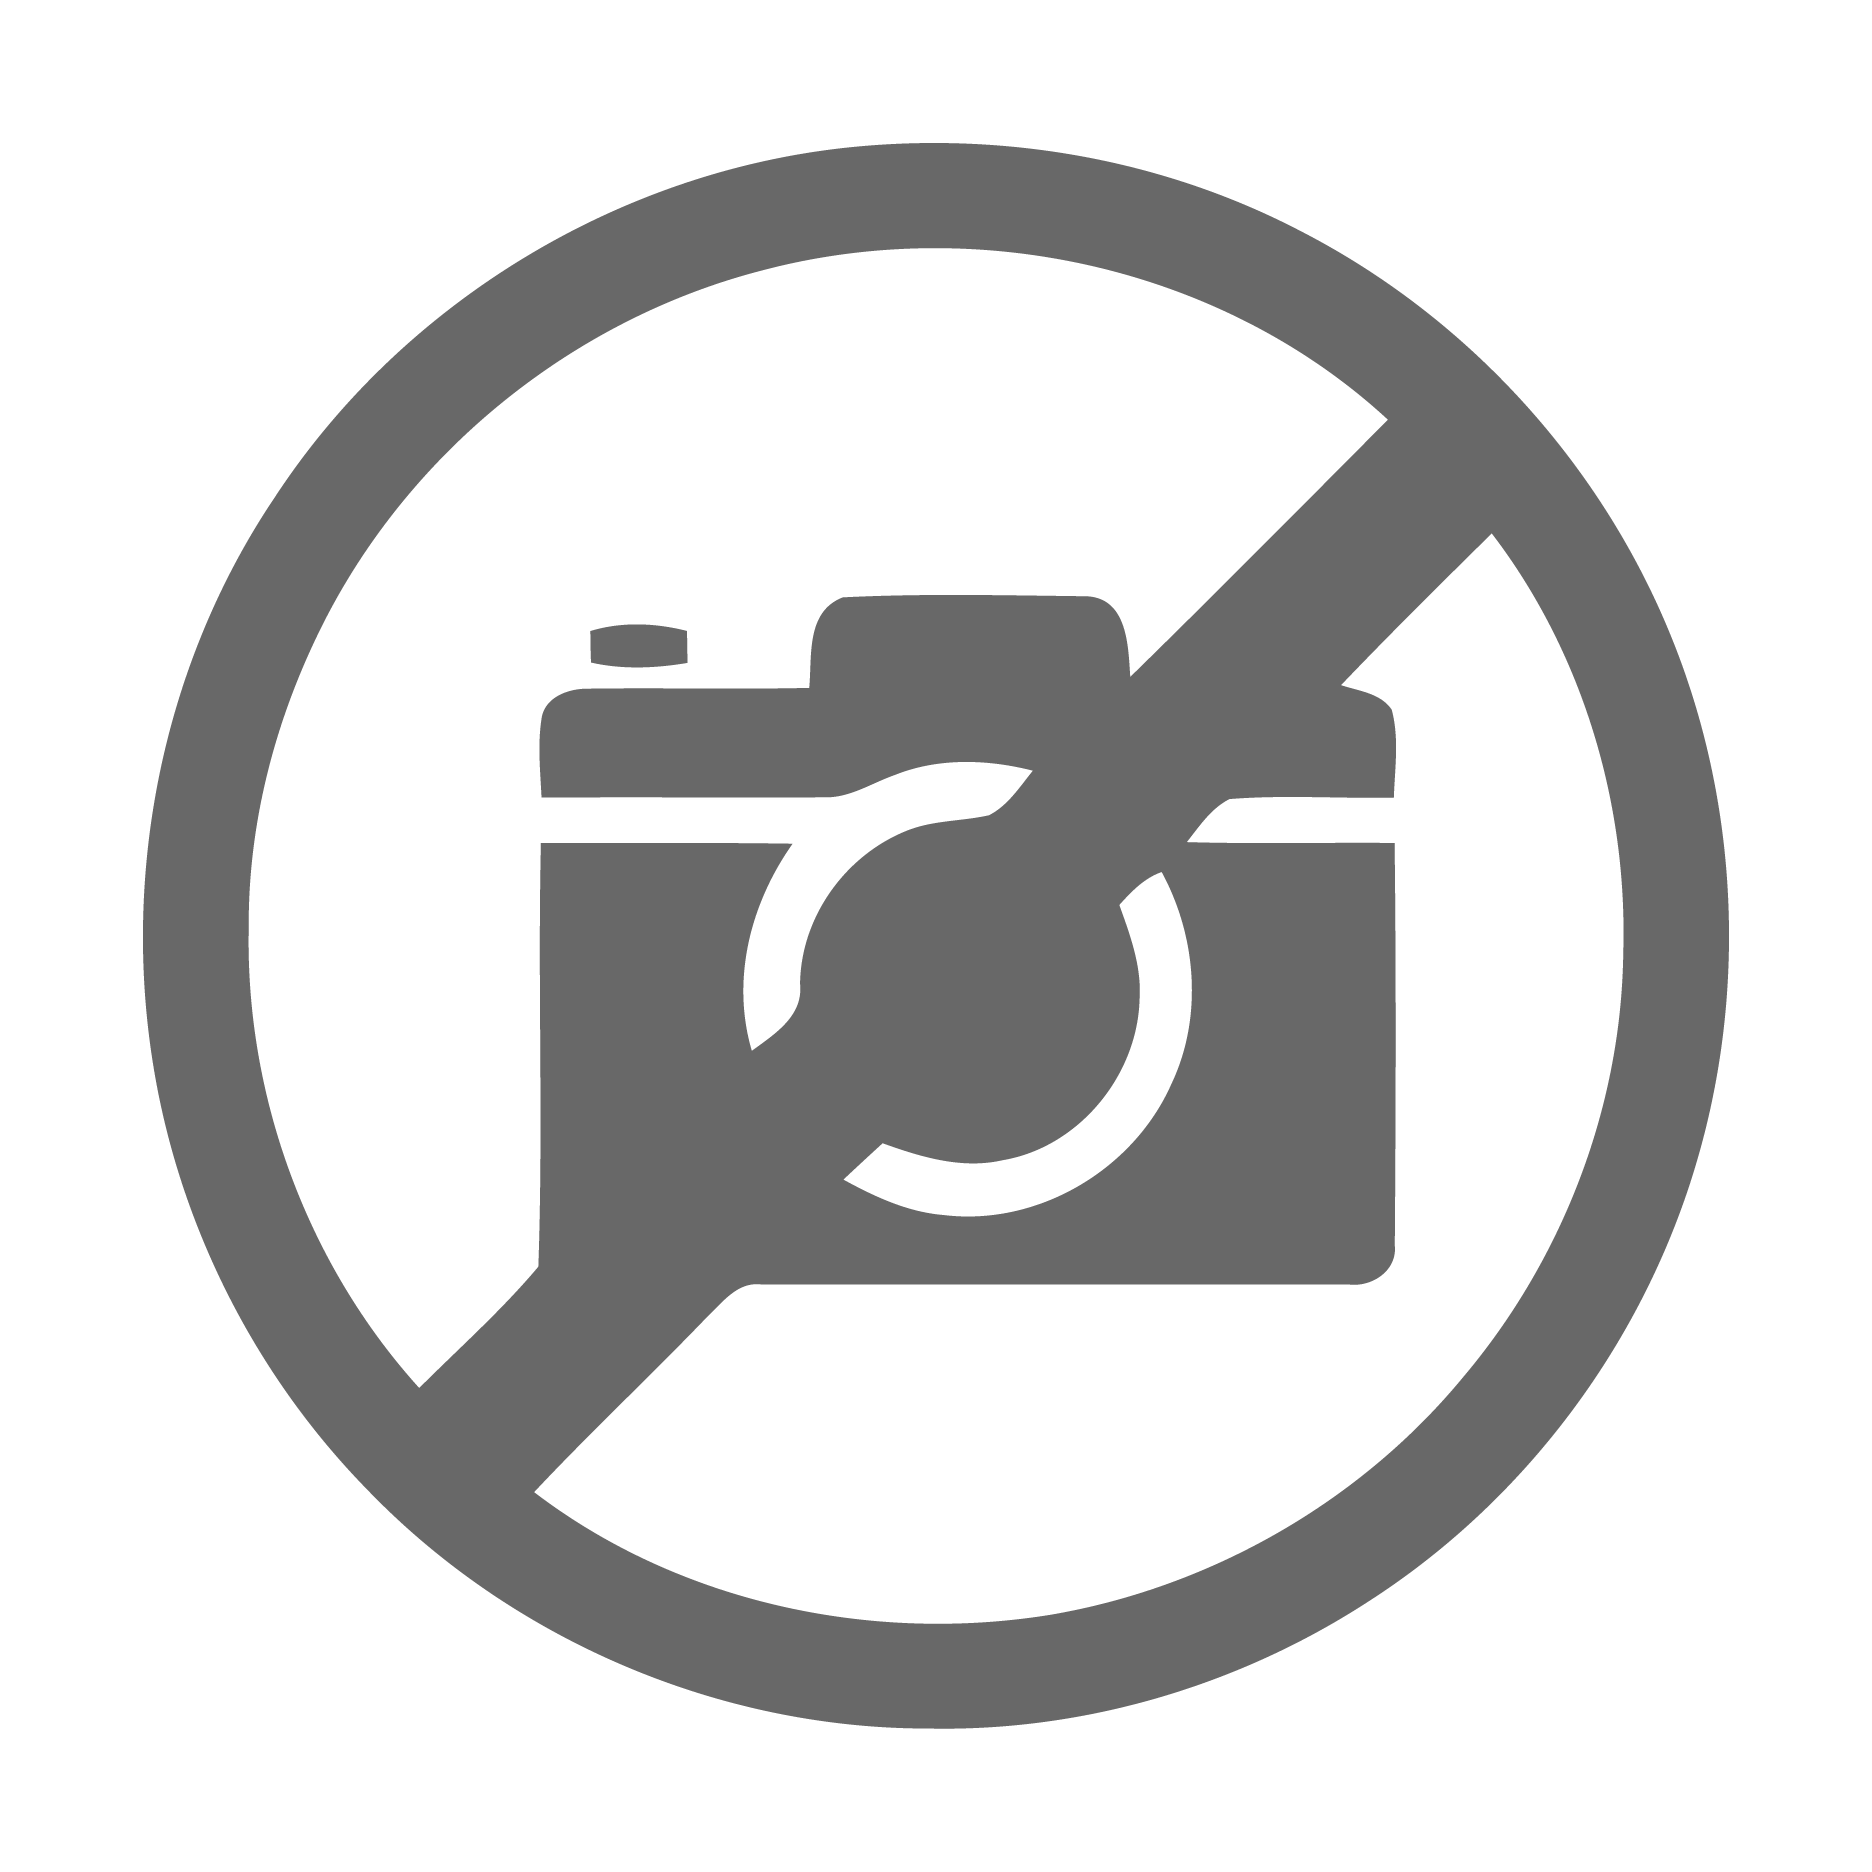 no-image-icon-4_110.png